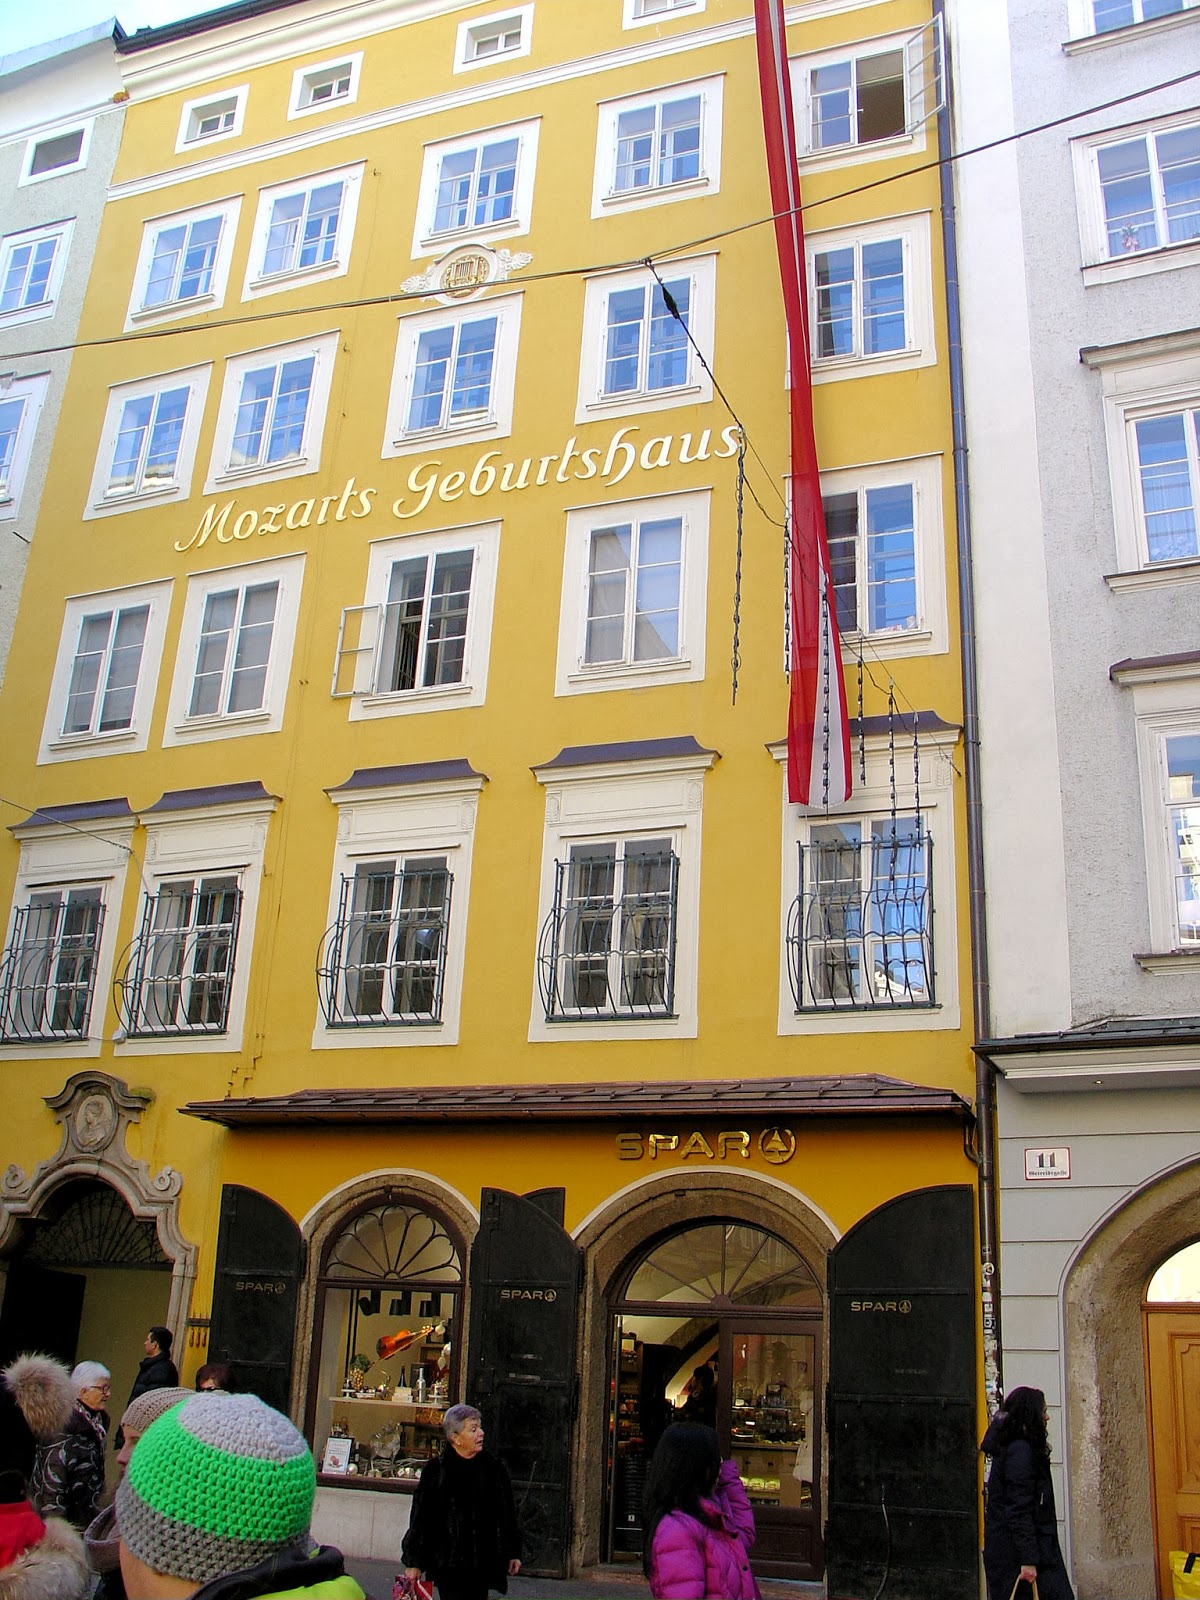 The Mozart family occupied the third floor of the house at Getreidegasse 9.